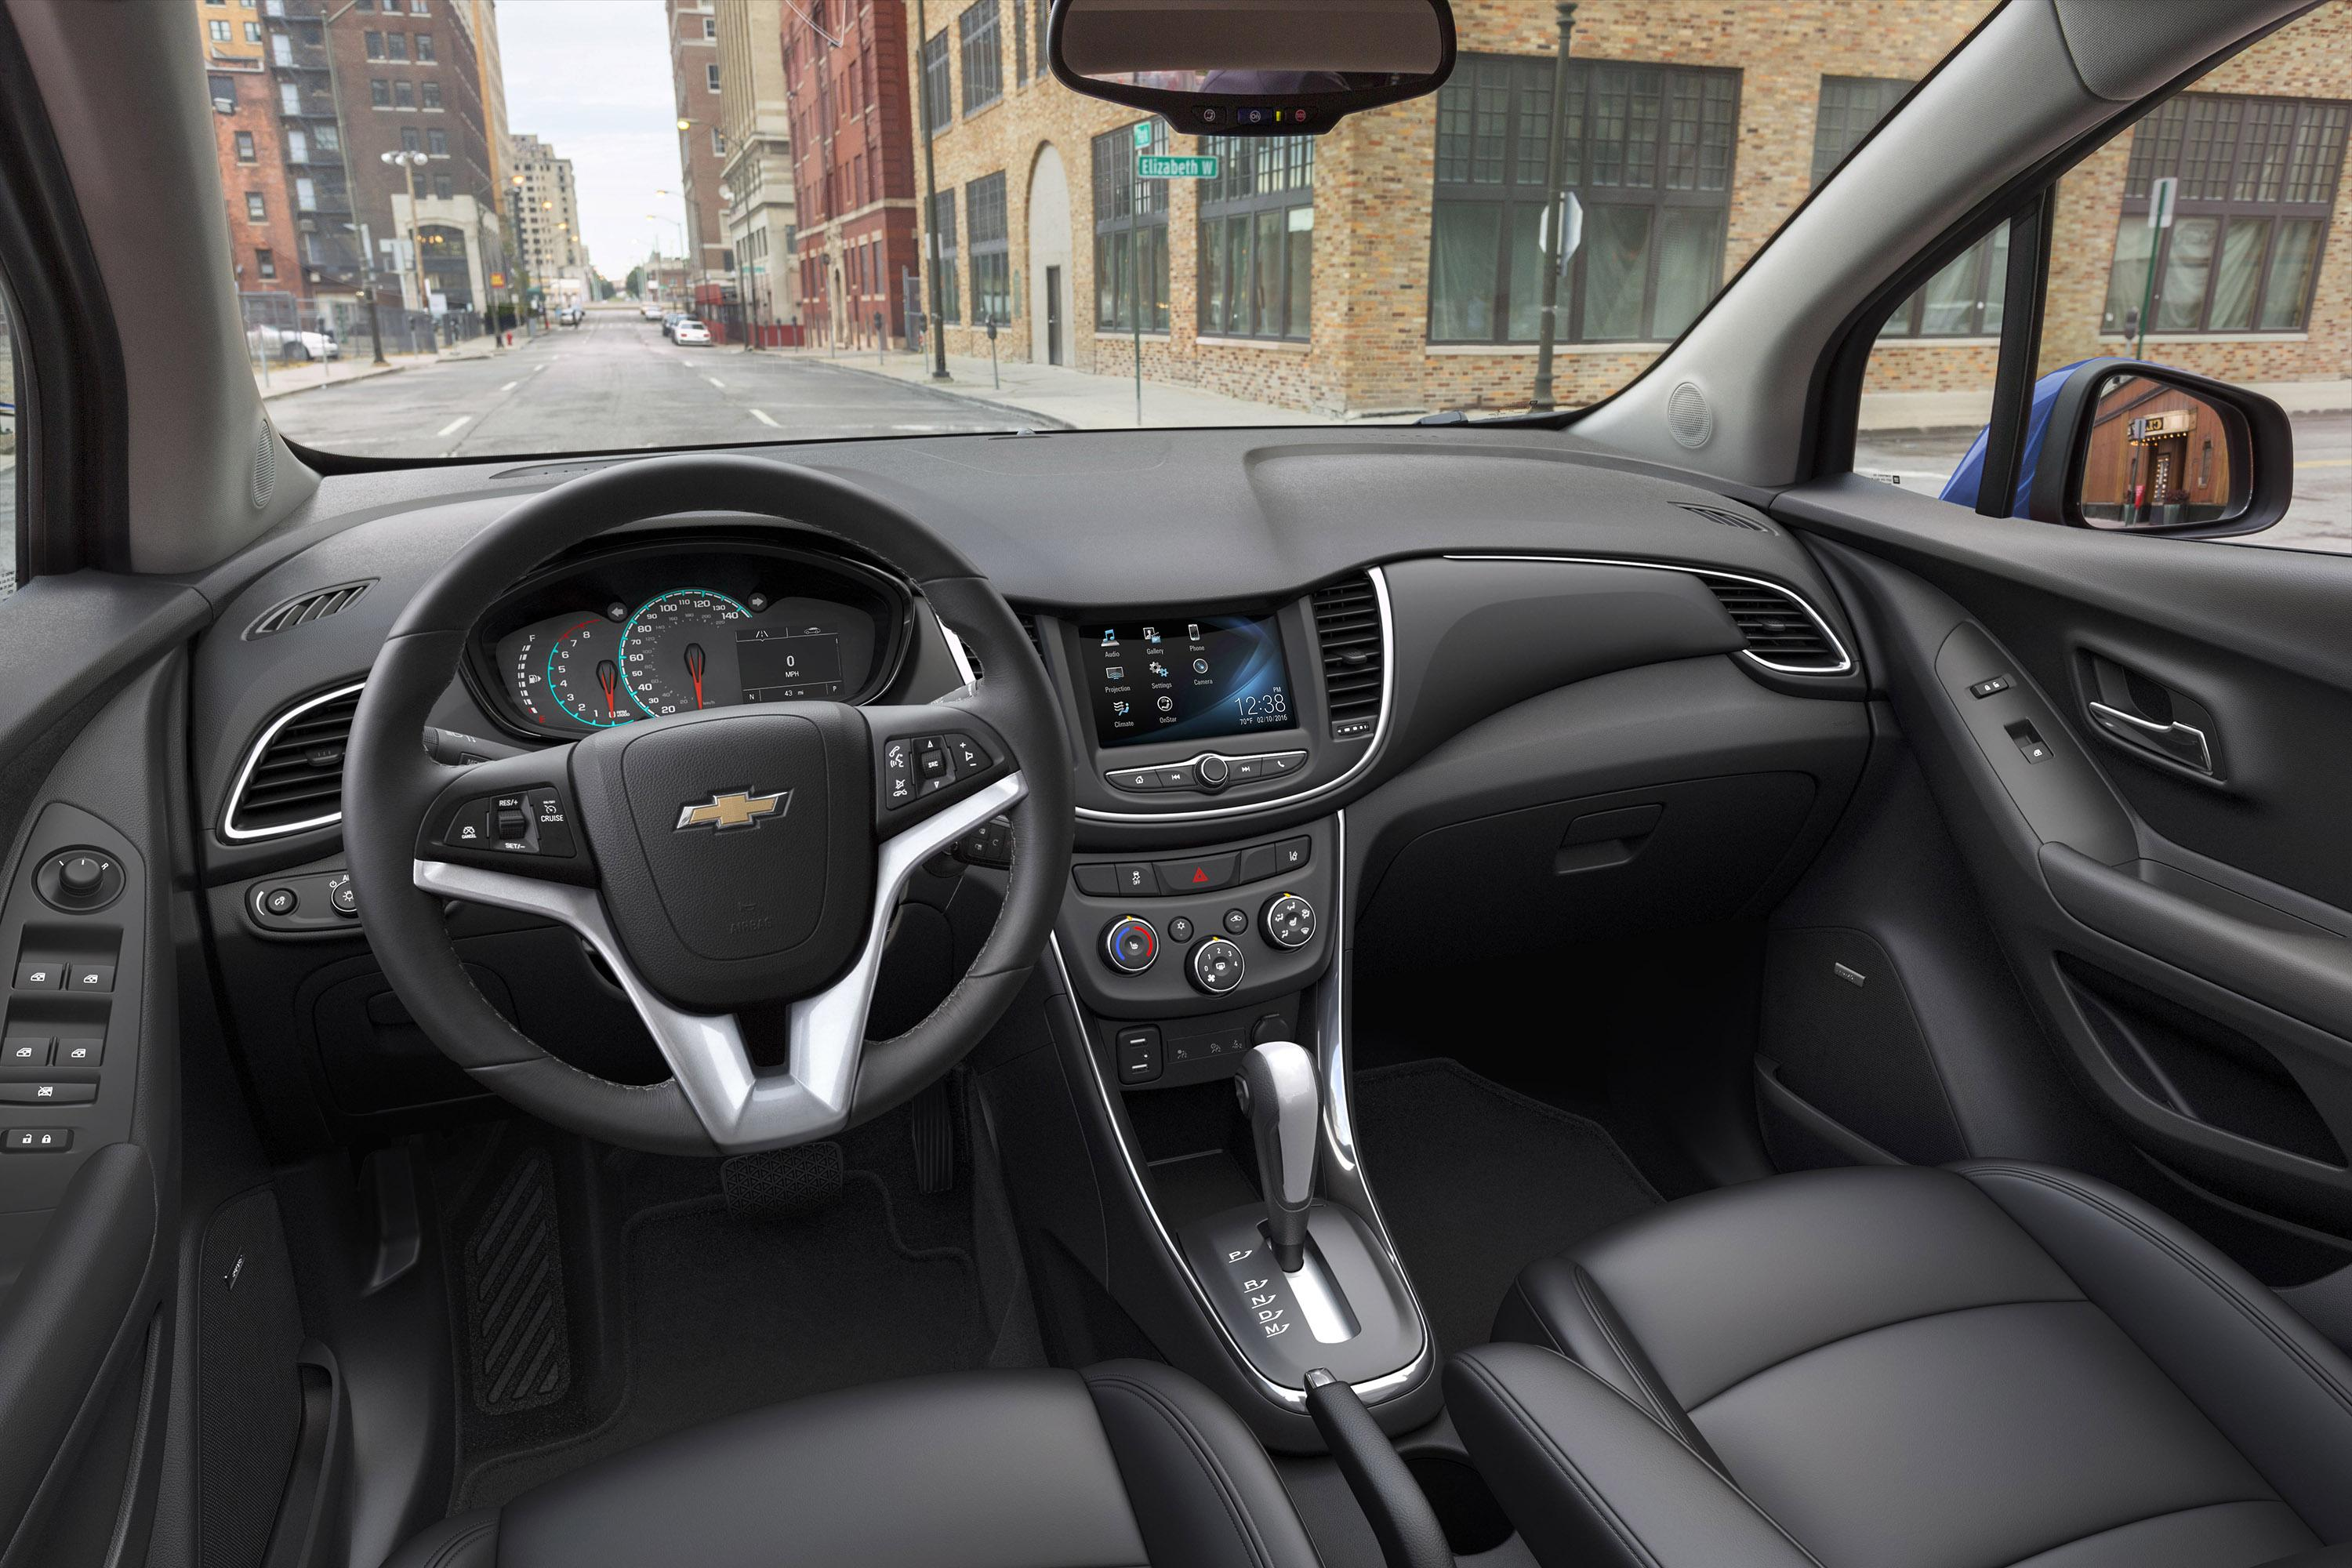 2017 chevrolet trax all you wanted to know wallace chevrolet 2017 chevrolet trax sciox Image collections